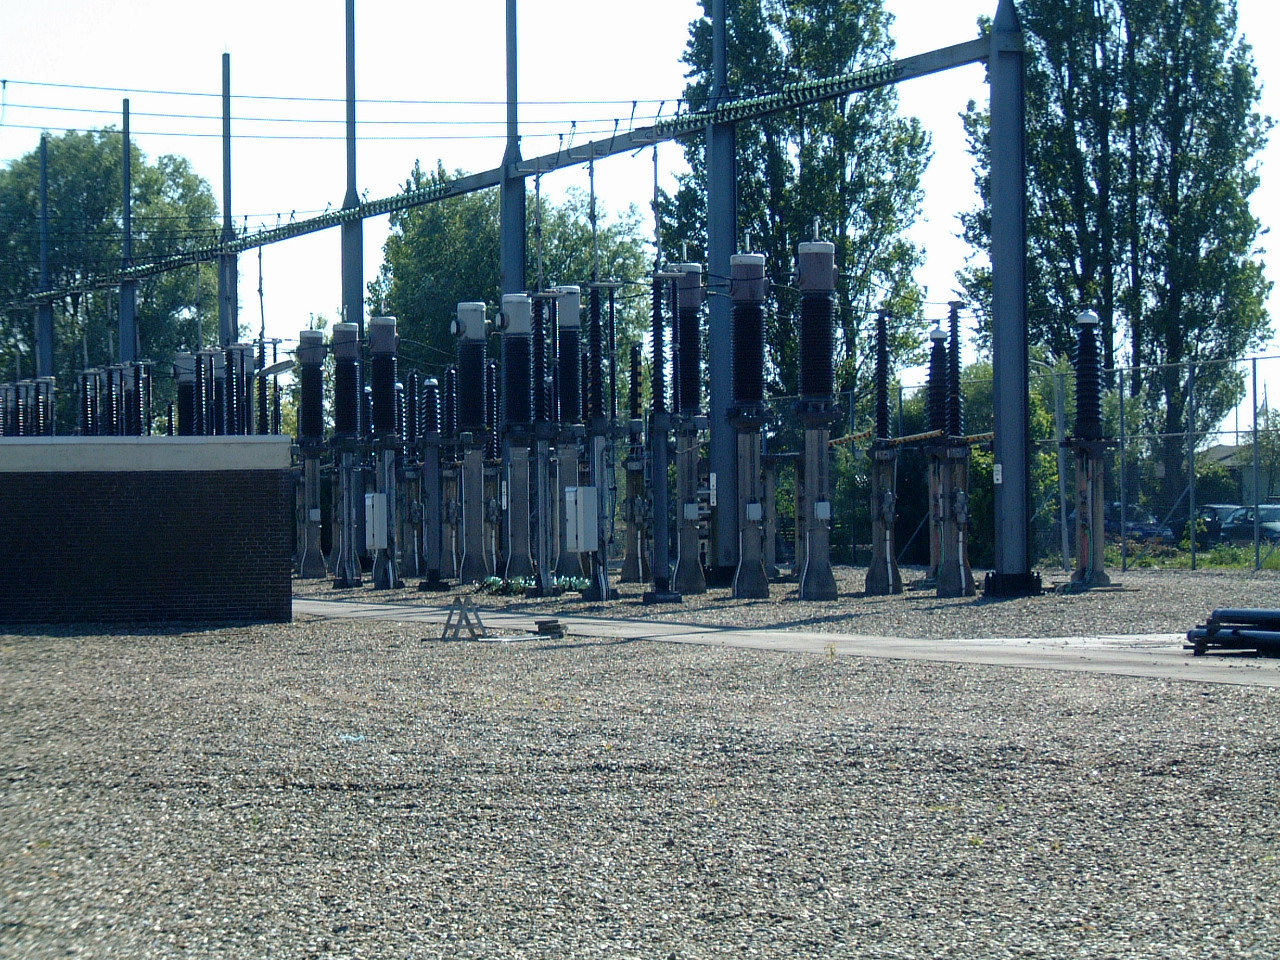 Sub Stations can cause External Transient Voltage in excess of Tens of Thousands of Volts. Use High Quality, High Performance Surge Protectors to Prevent Damage.